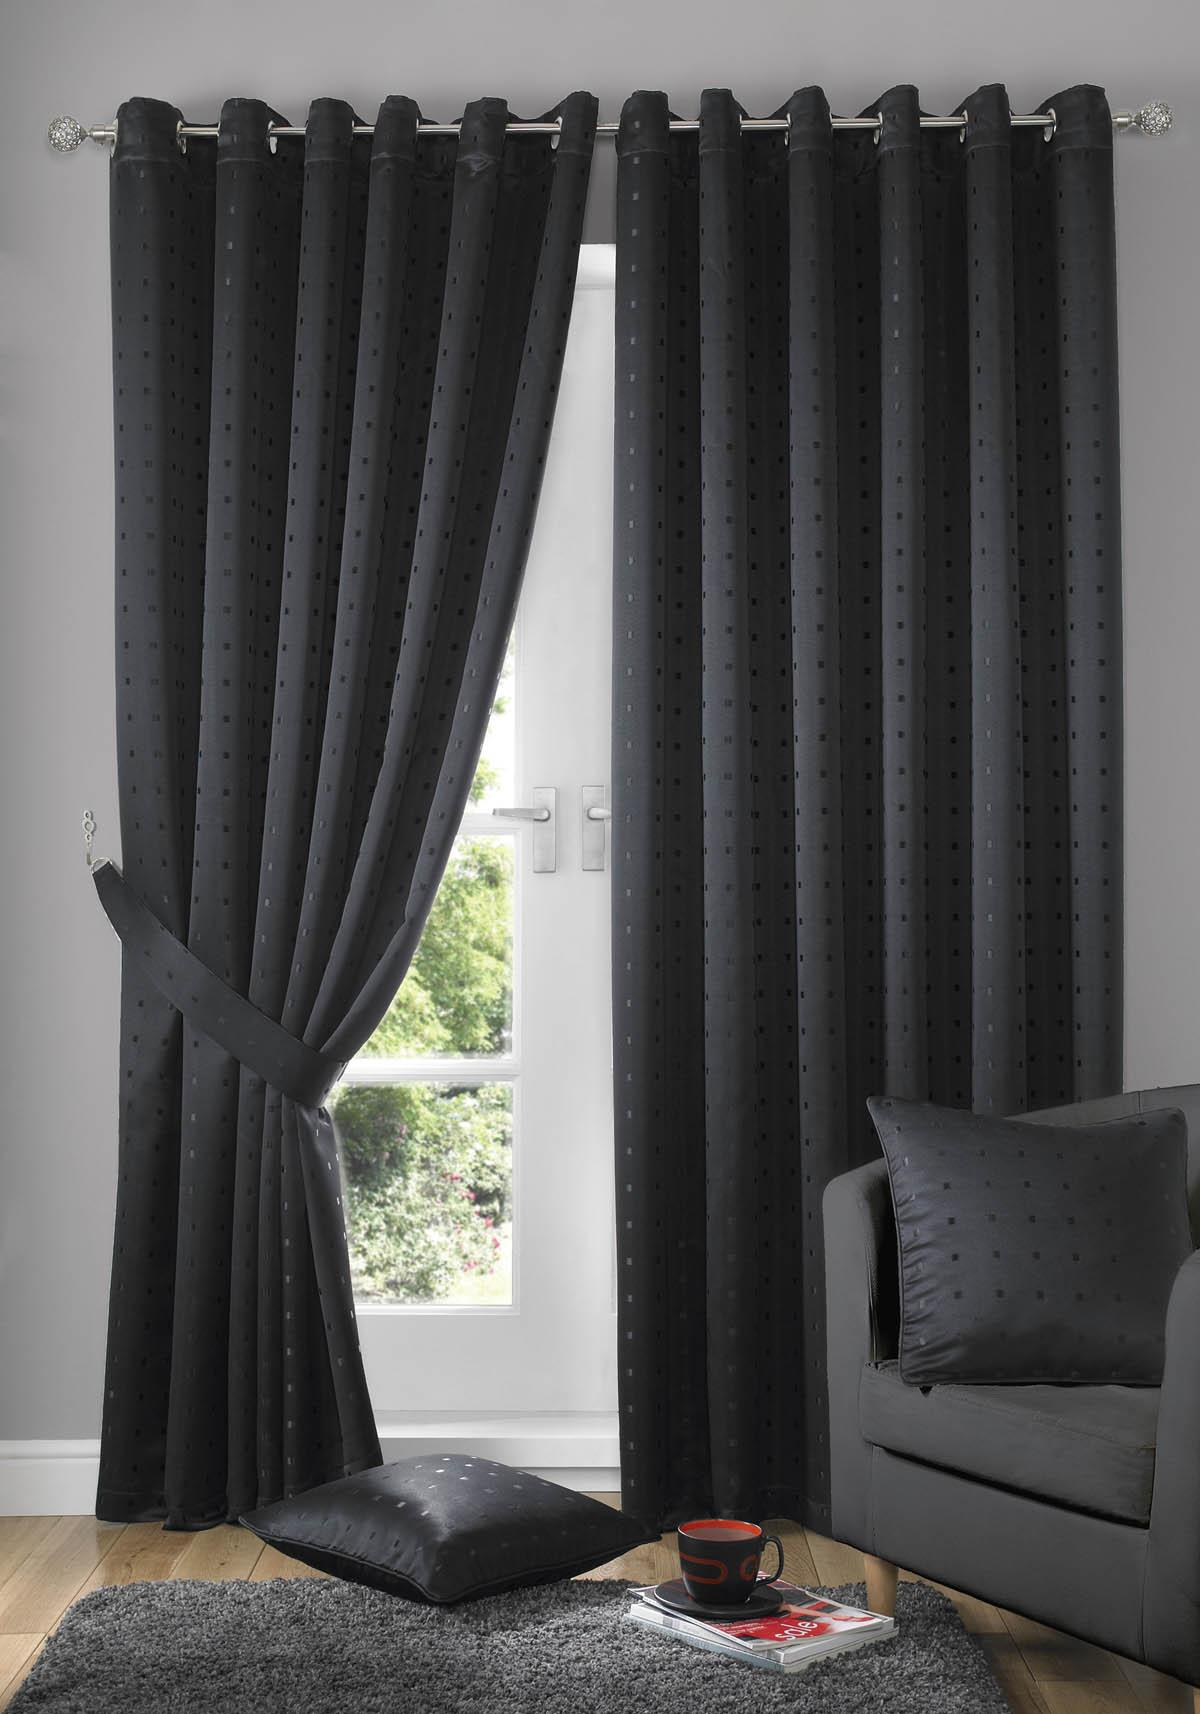 Madison eyelet lined curtains black free uk delivery - Modern fabrics for curtains ...